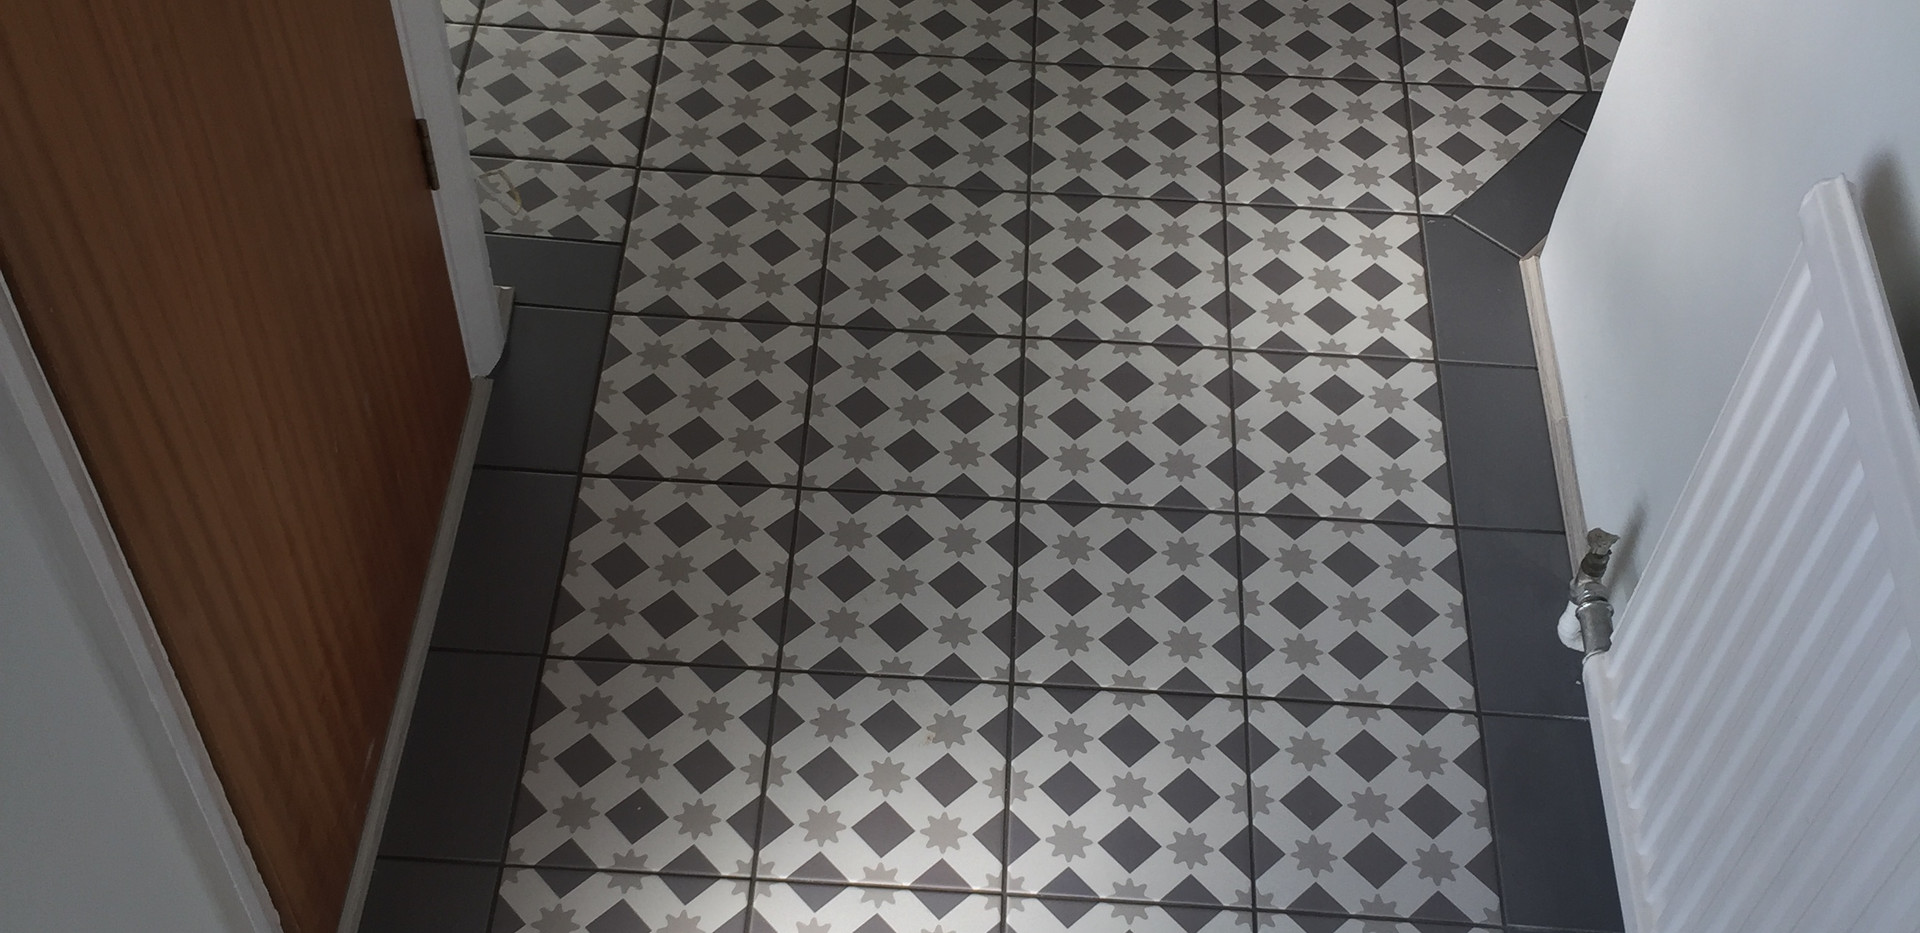 Floor tiles in hallway